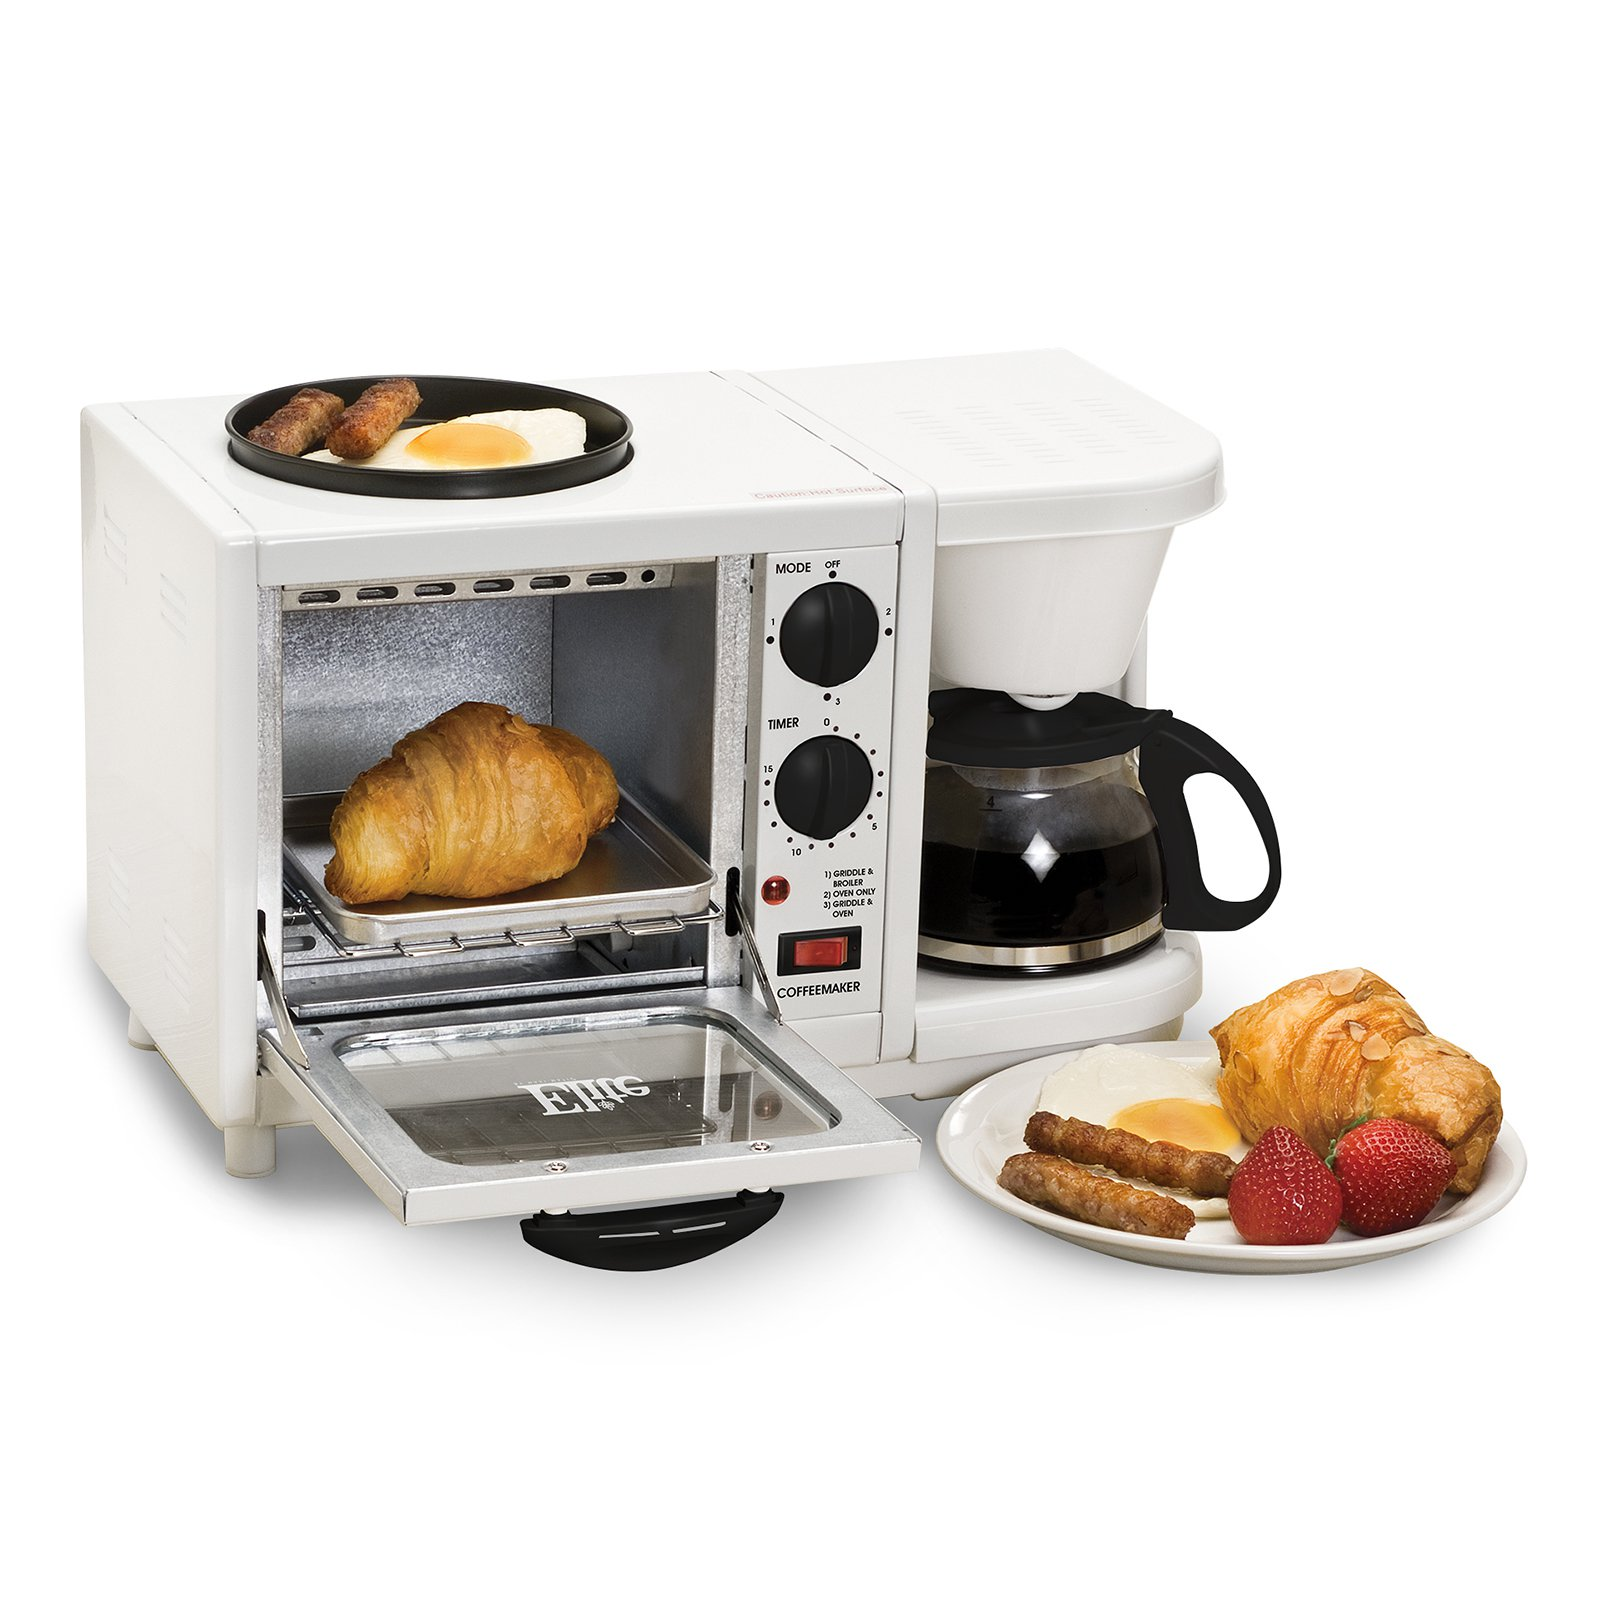 Elite Cuisine EBK-200 3-in-1 Multifunction Breakfast Center, White